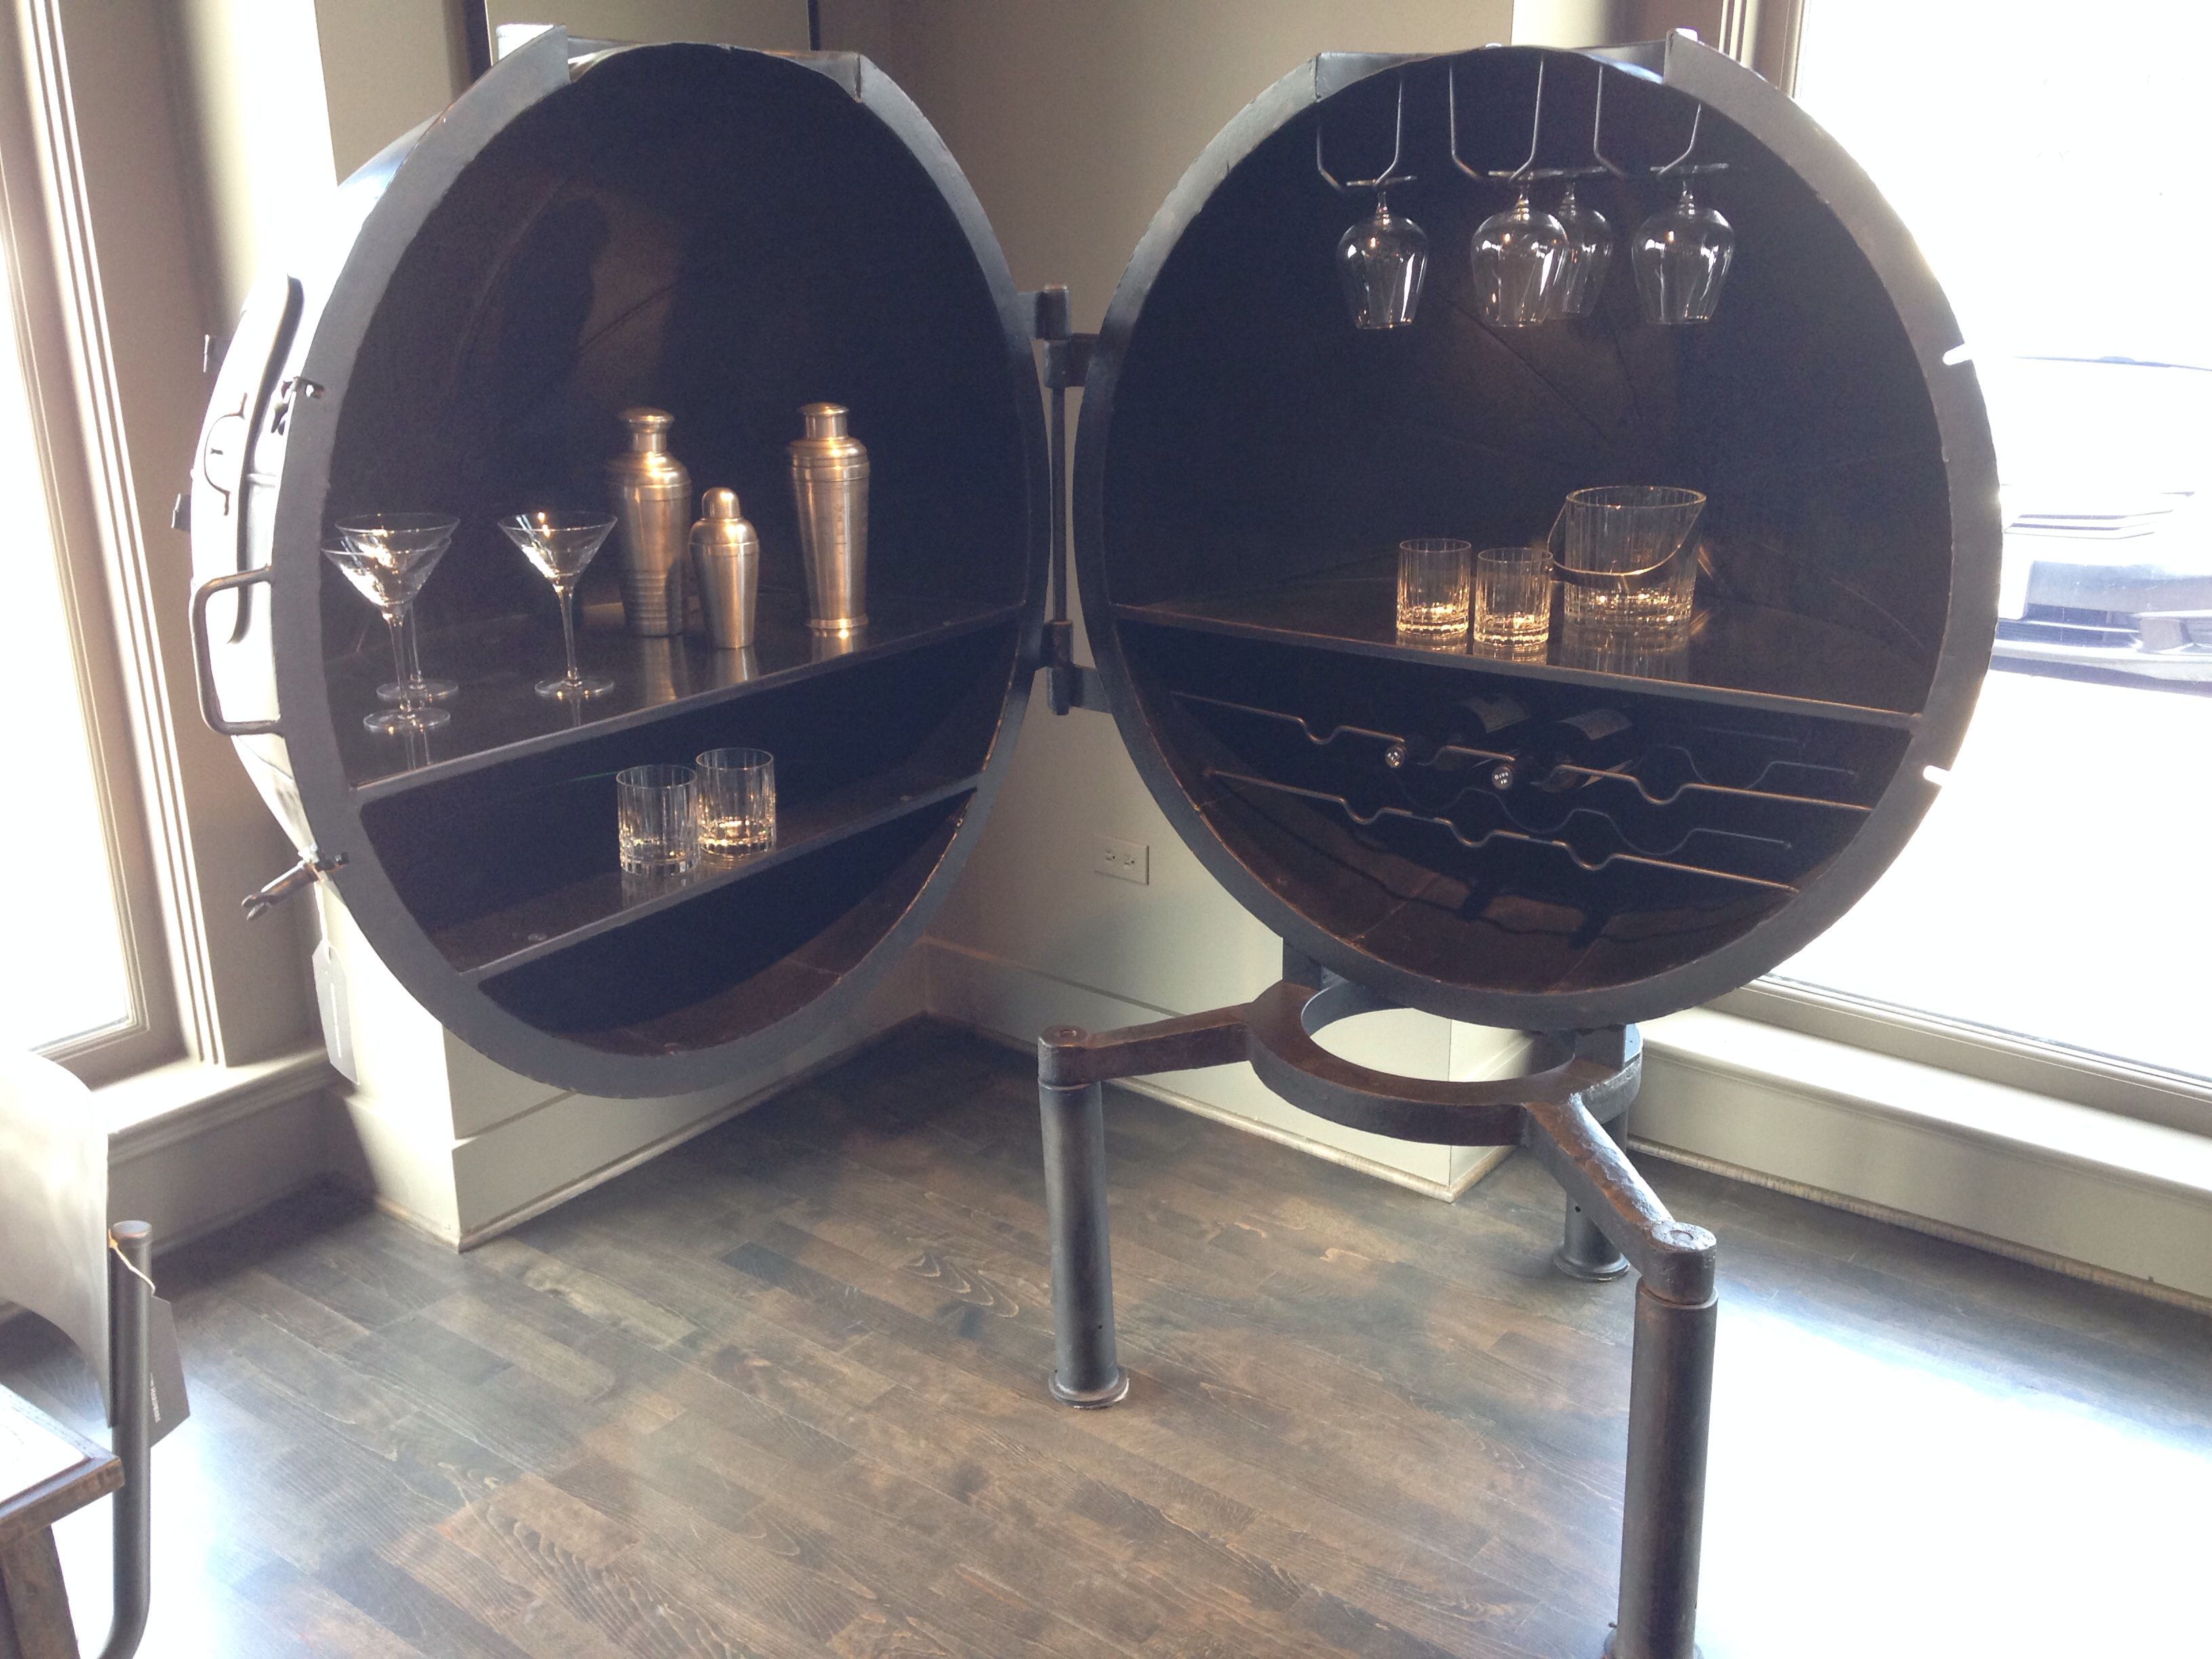 Beautiful Awesome Bar Set From Restoration Hardware! Setup In Our New Office?  Perhaps. #Infusevodka